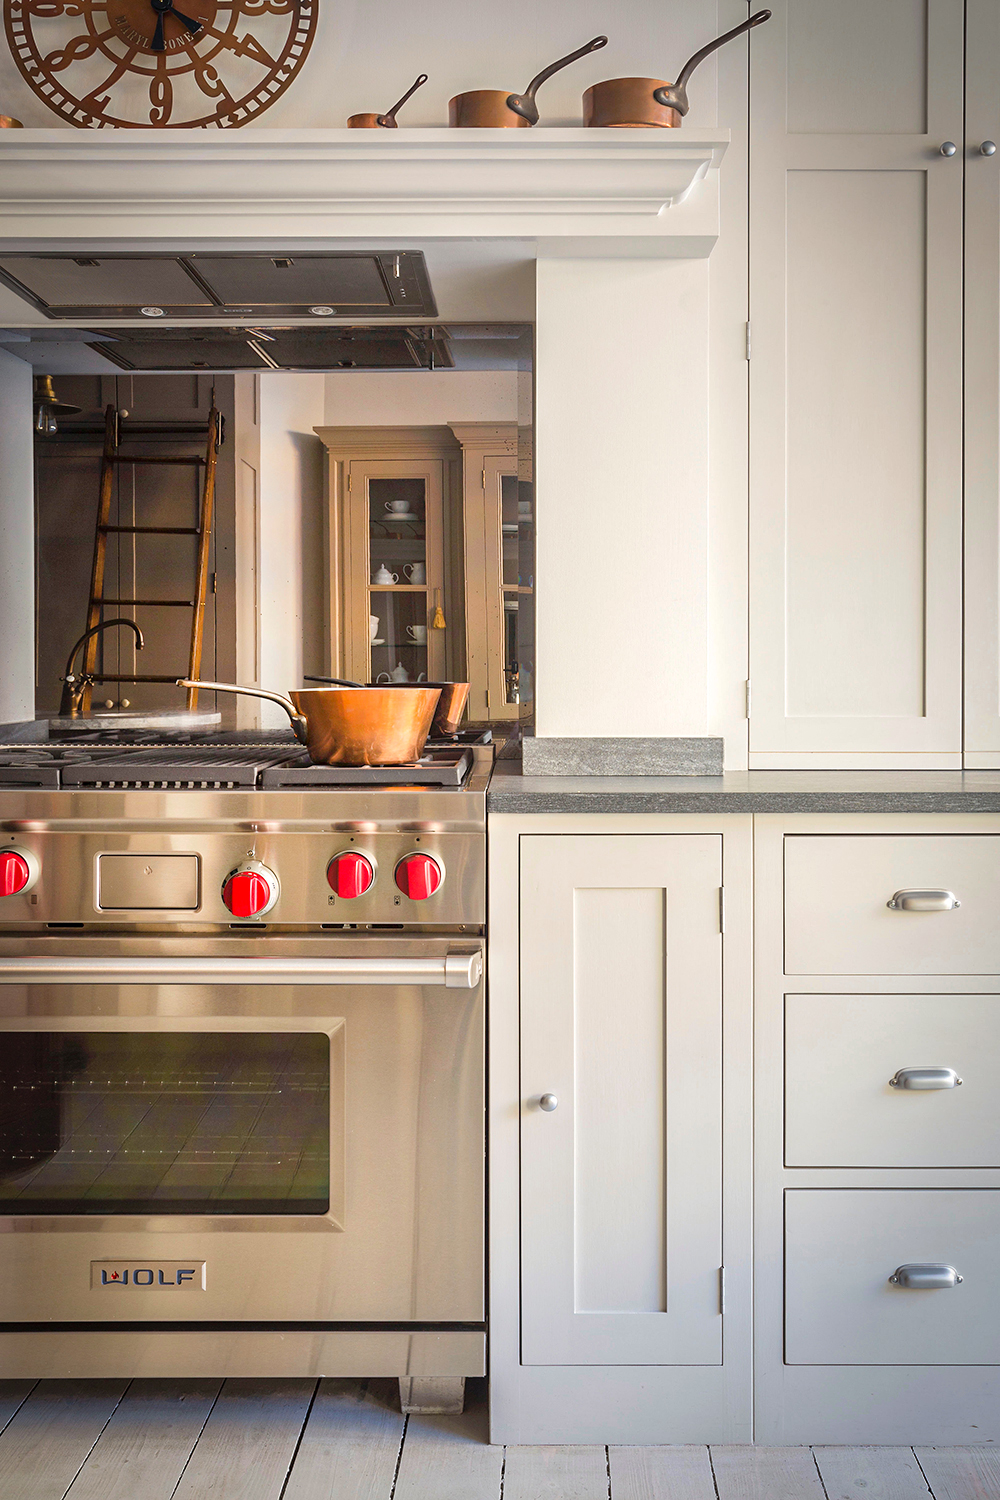 Wolf oven with red knobs and copper pot on the hob in a white georgian classic kitchen with canopy above the cooker.